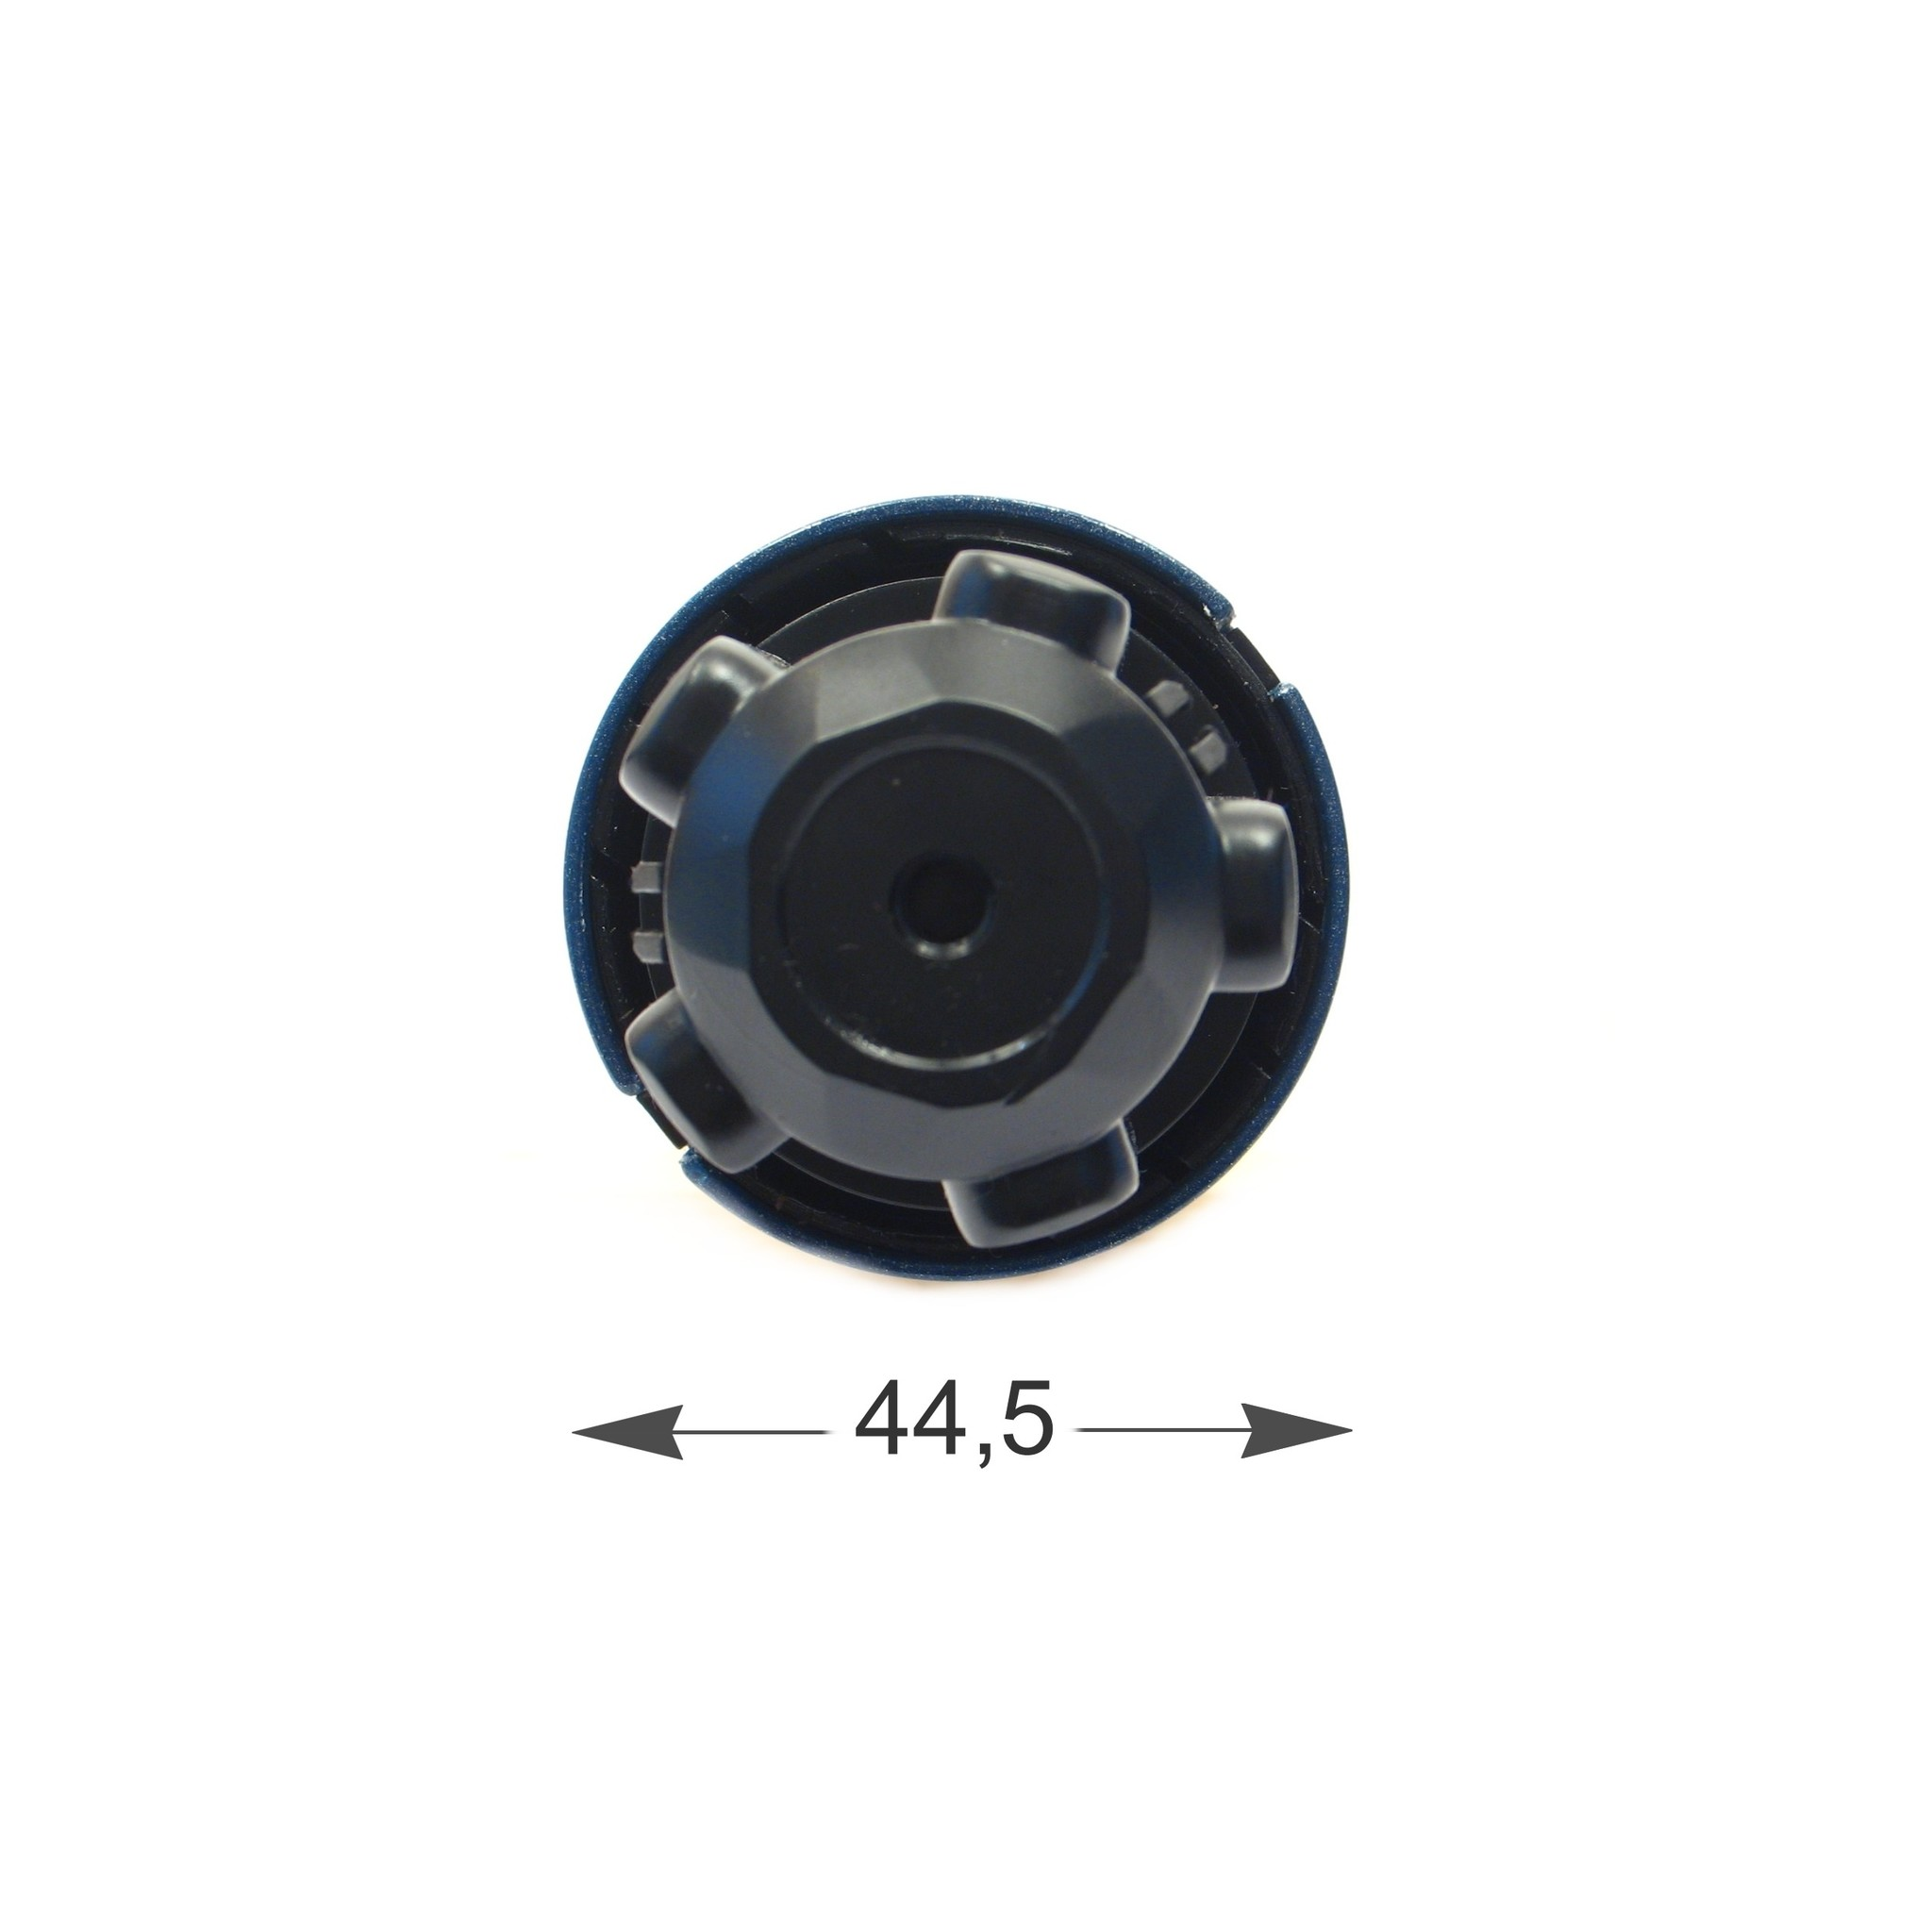 Somfy LT50 HiPro RH (RoundHead) buismotor